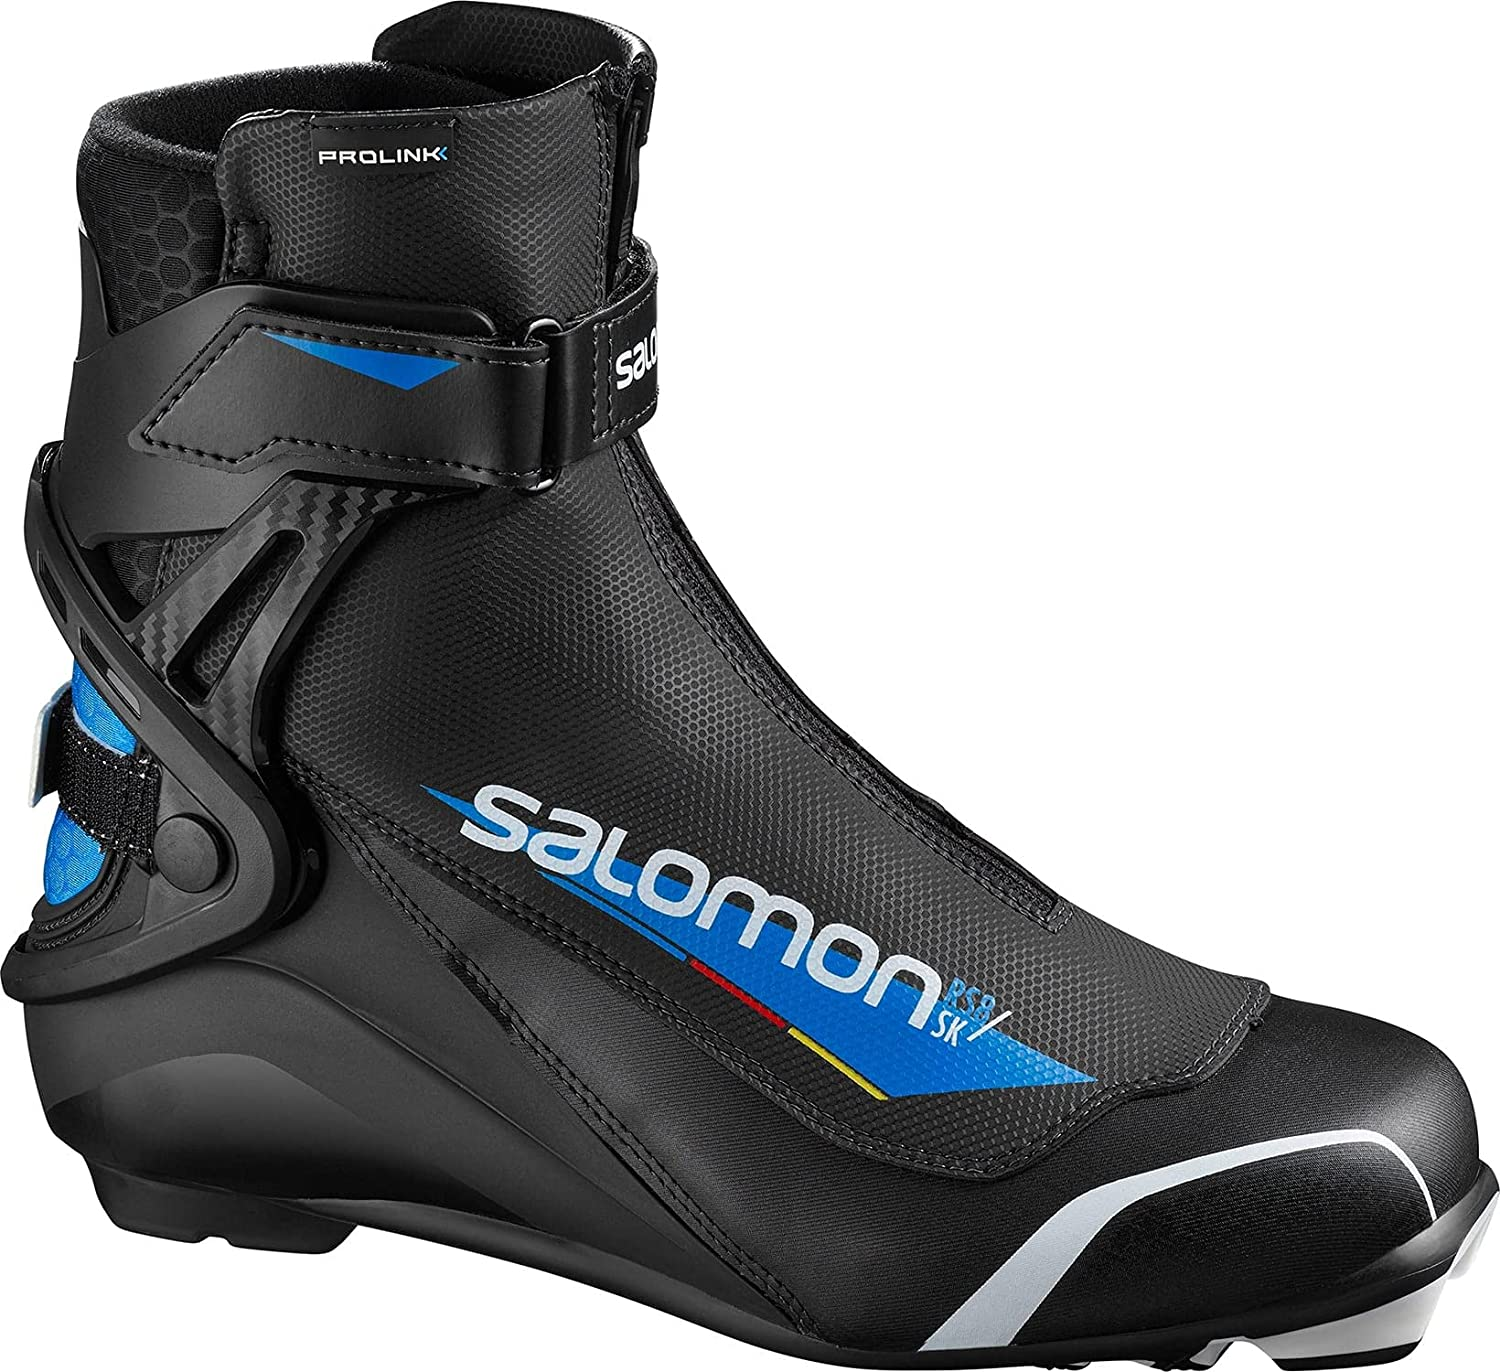 Salomon RS8 specialty shop Prolink Mens Recommended Boots XC Ski